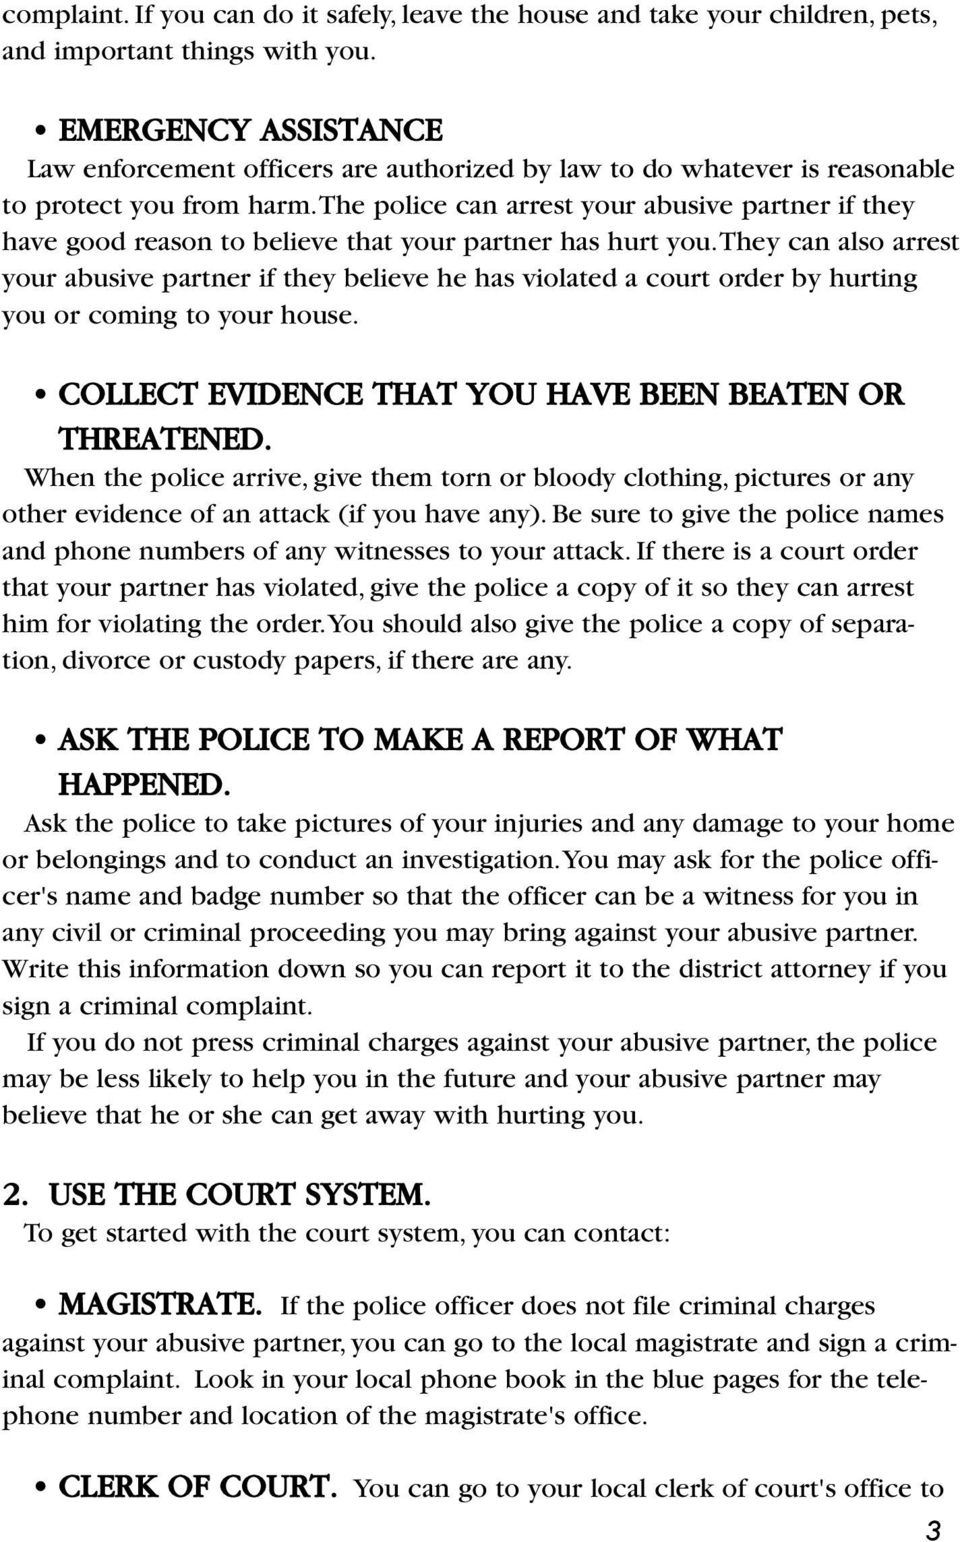 the police can arrest your abusive partner if they have good reason to believe that your partner has hurt you.